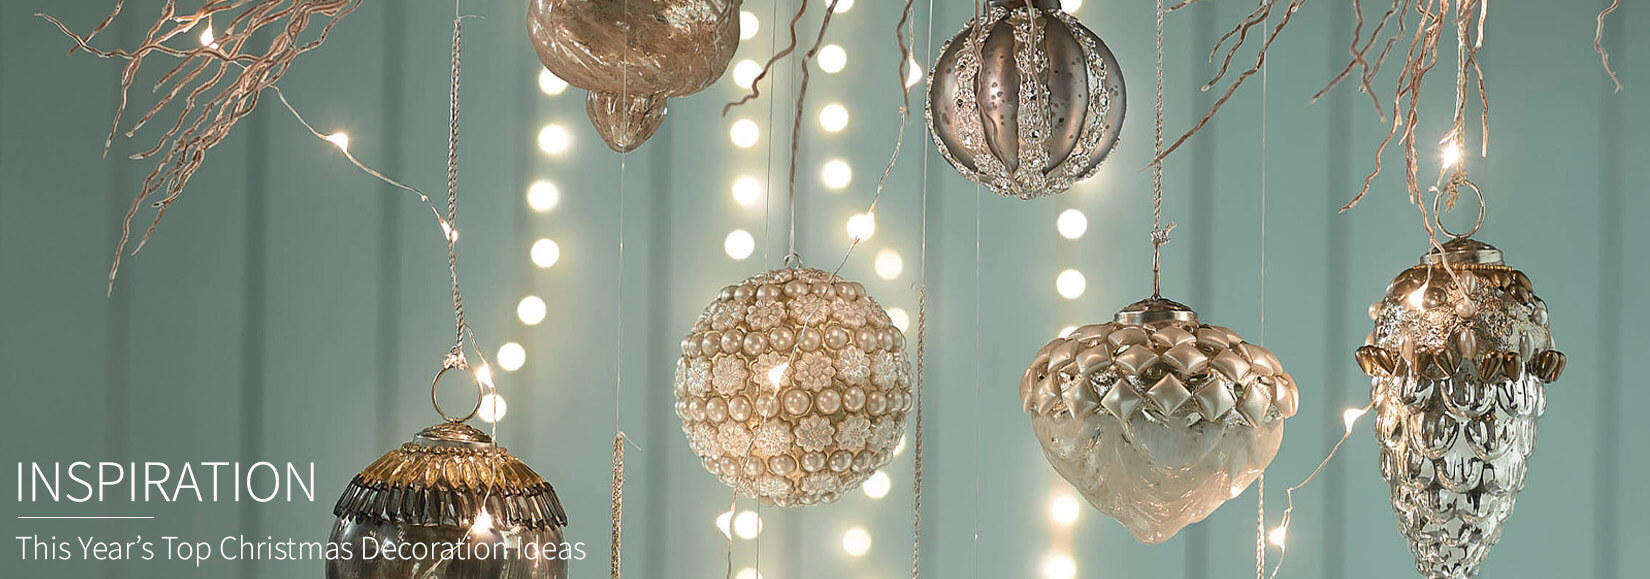 This Year's Top Christmas Decorating Trends: Christmas Decoration Ideas 2020